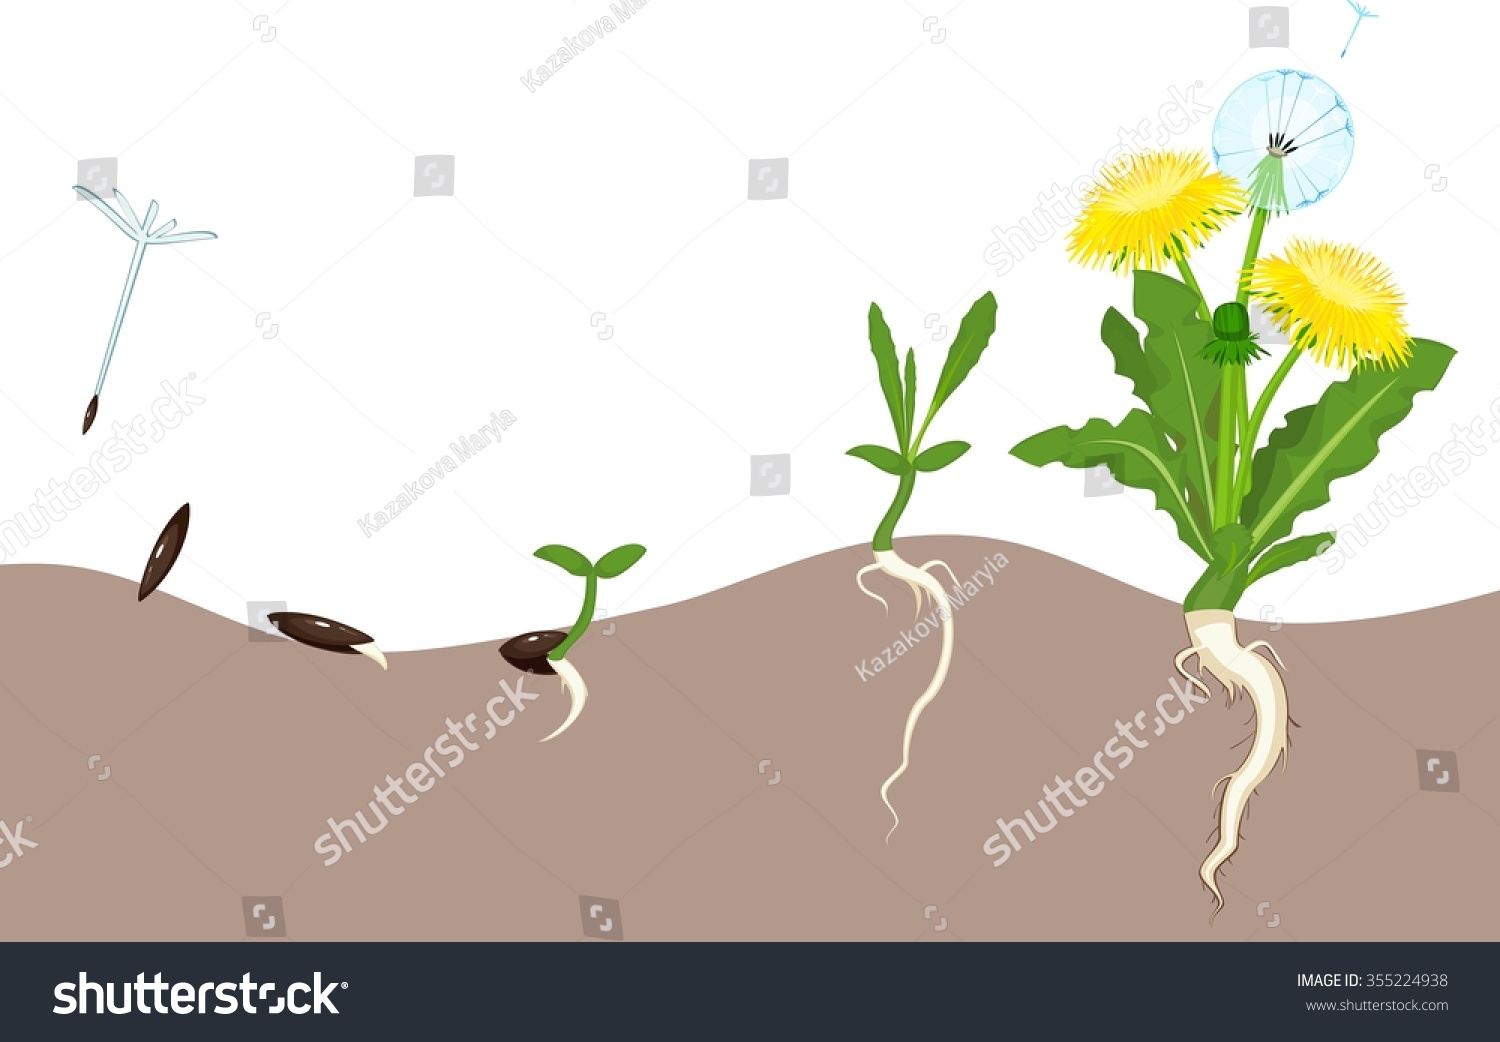 Life Cycle Dandelion Stock Illustration